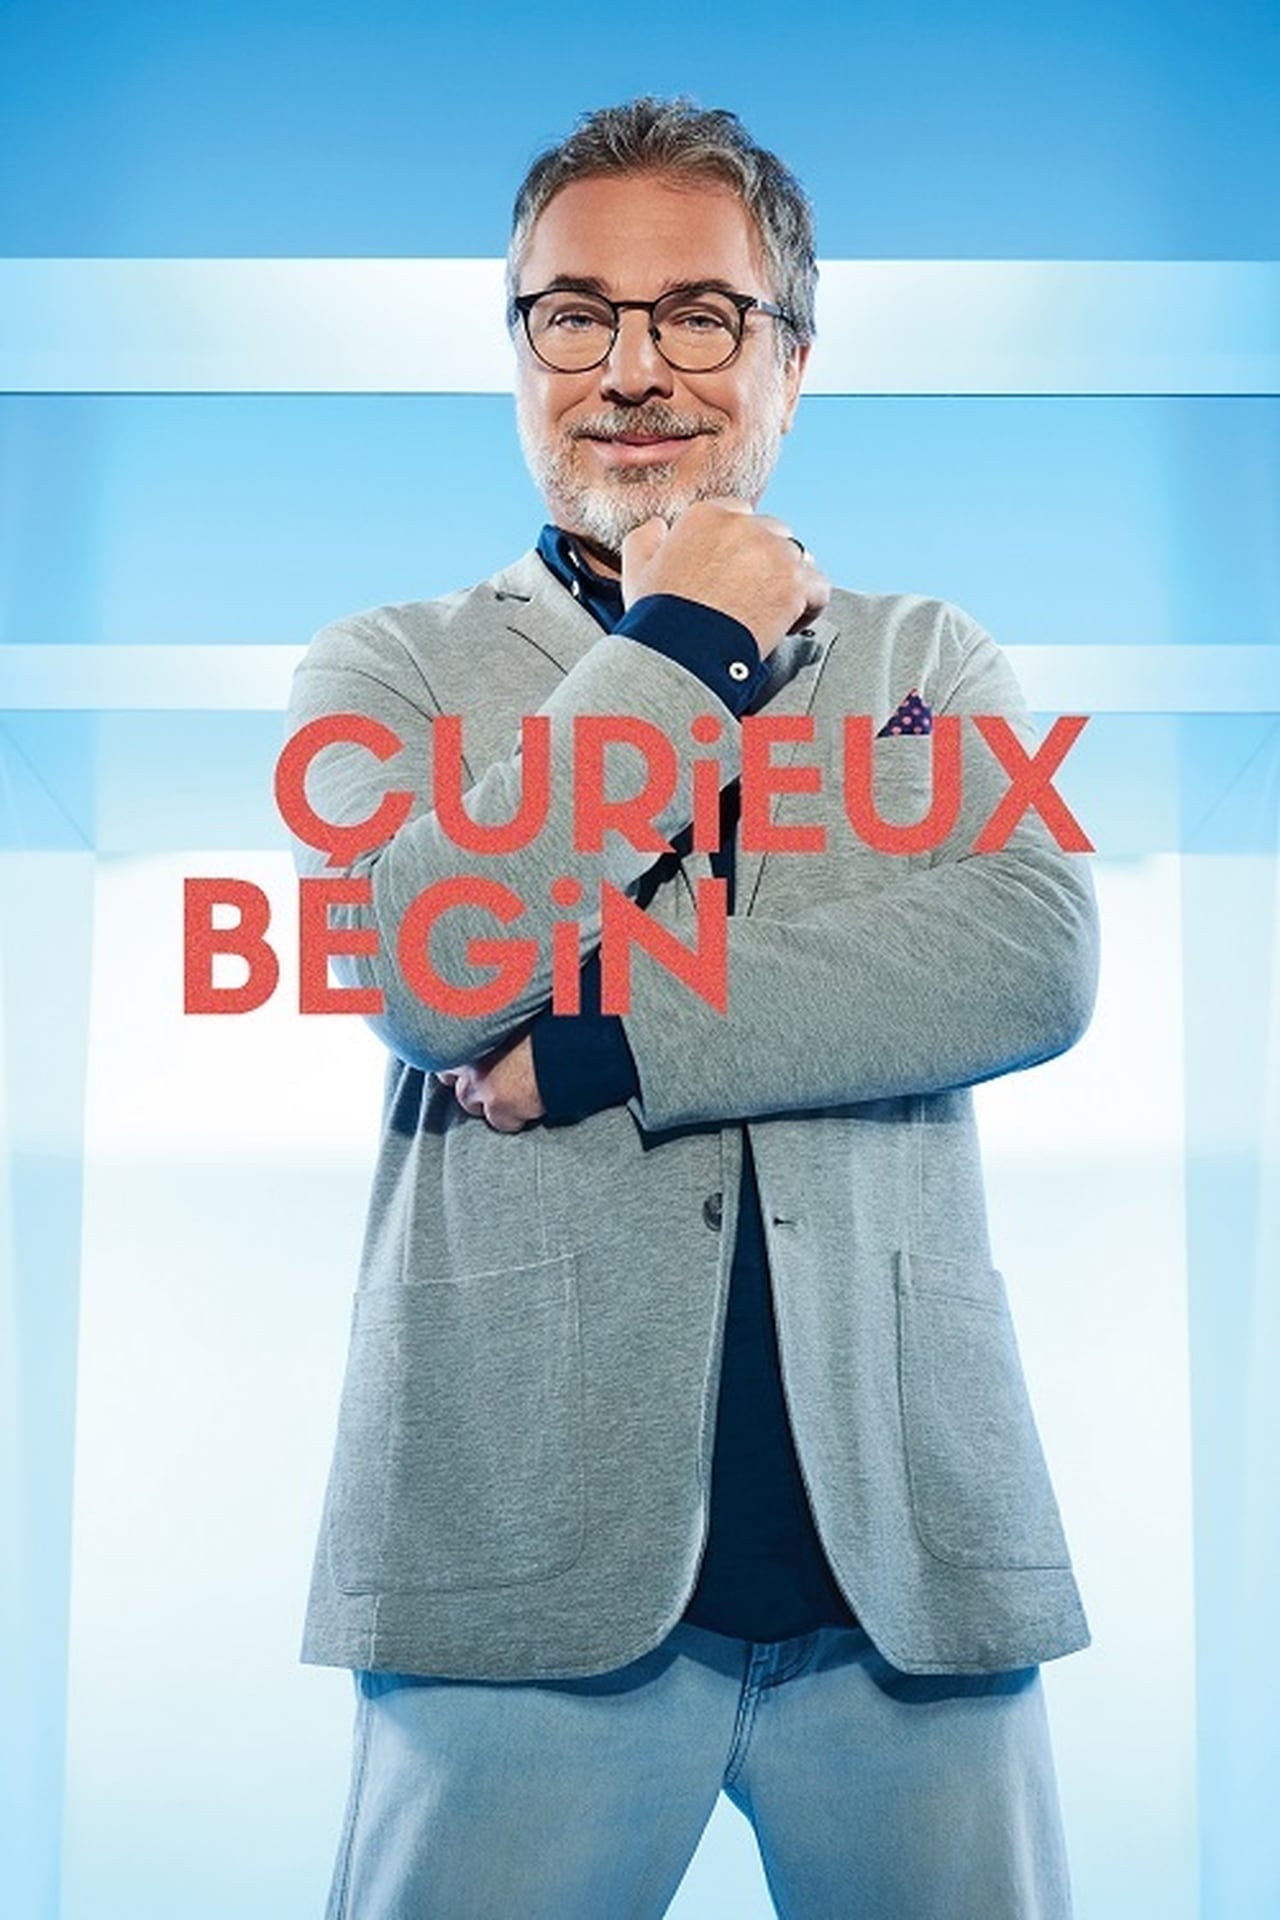 Putlocker Curieux Bégin Season 10 (2017)